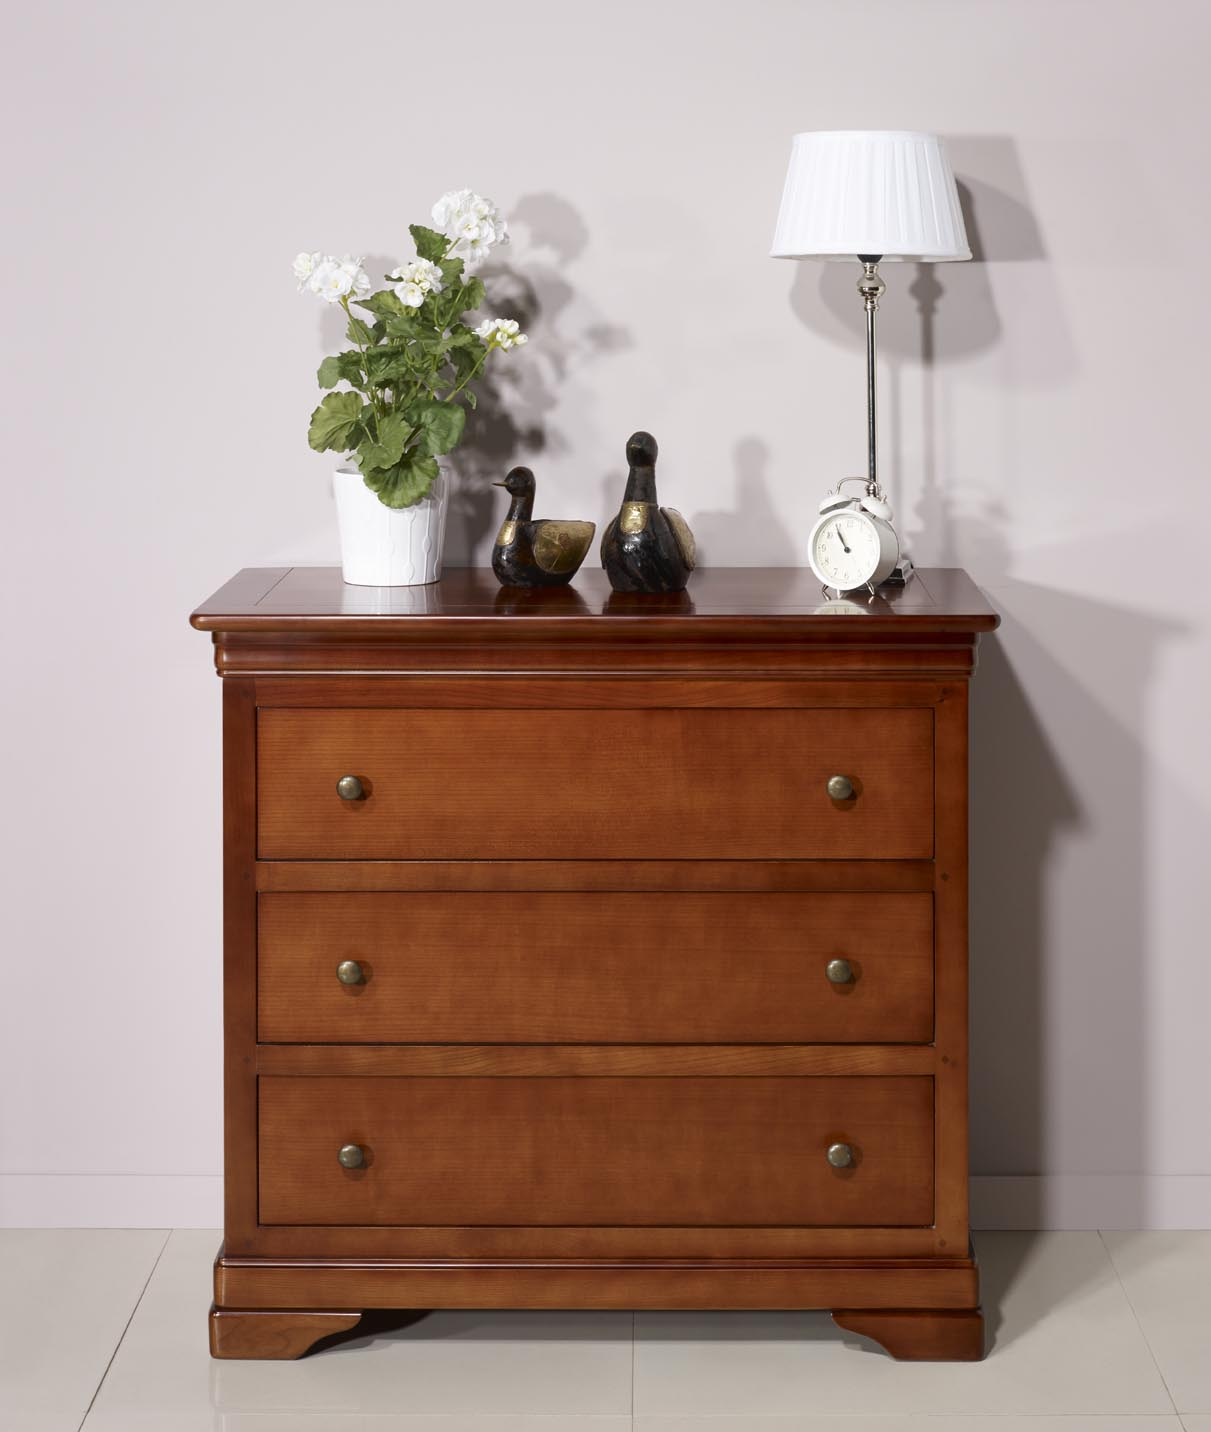 commode 3 tiroirs am lie en merisier massif de style louis philippe meuble en merisier massif. Black Bedroom Furniture Sets. Home Design Ideas